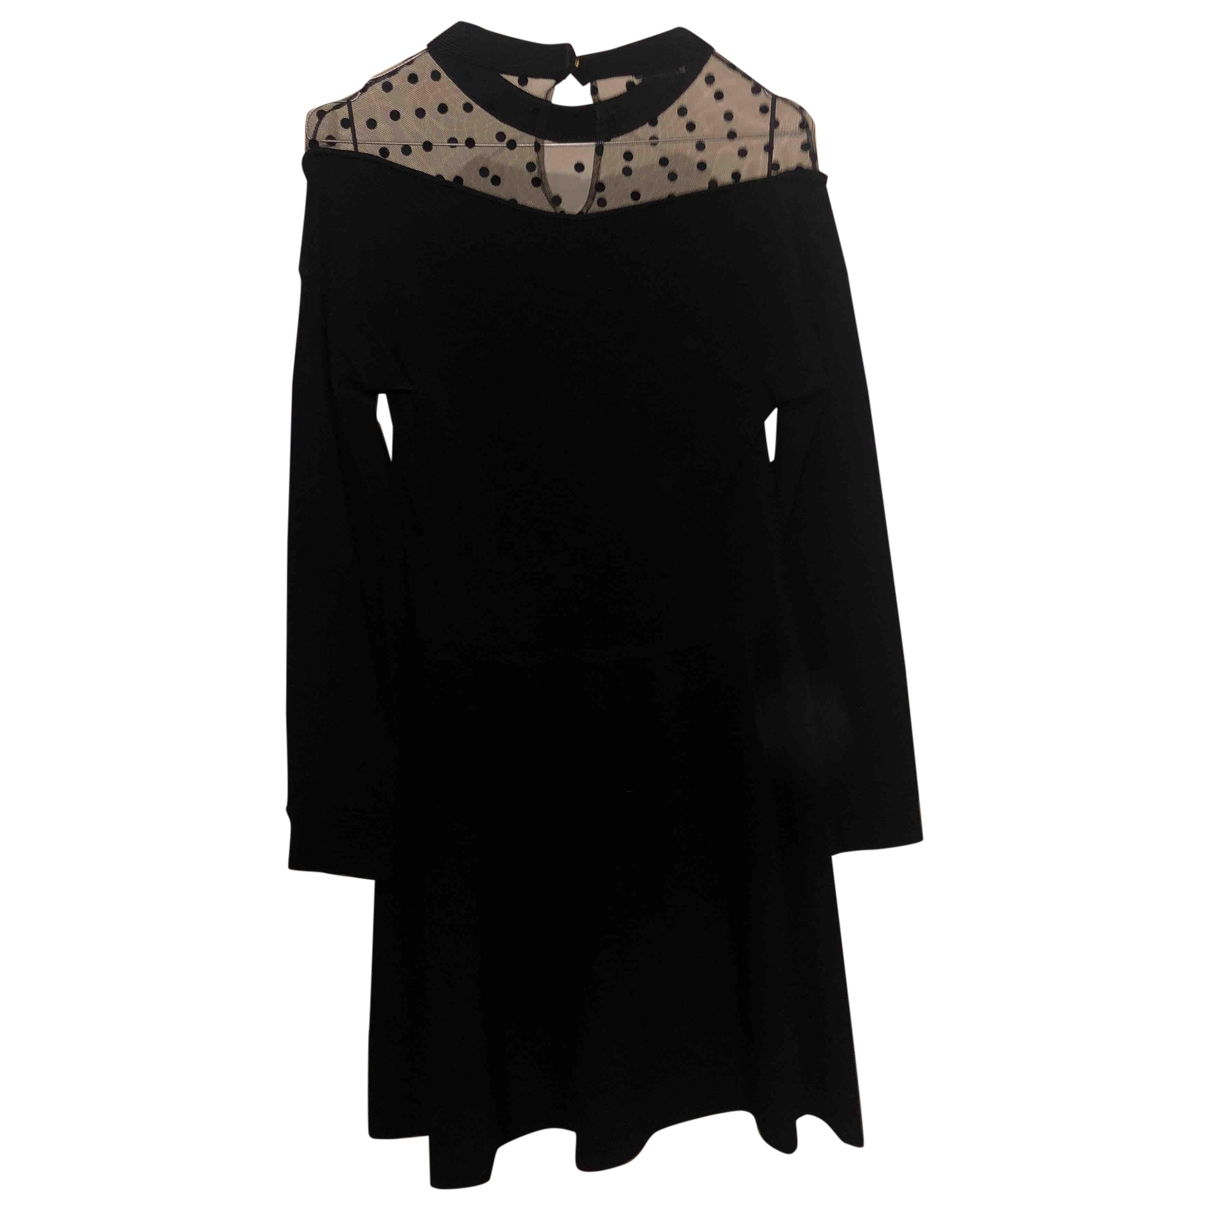 Emanuel Ungaro \N Kleid in  Schwarz Synthetik